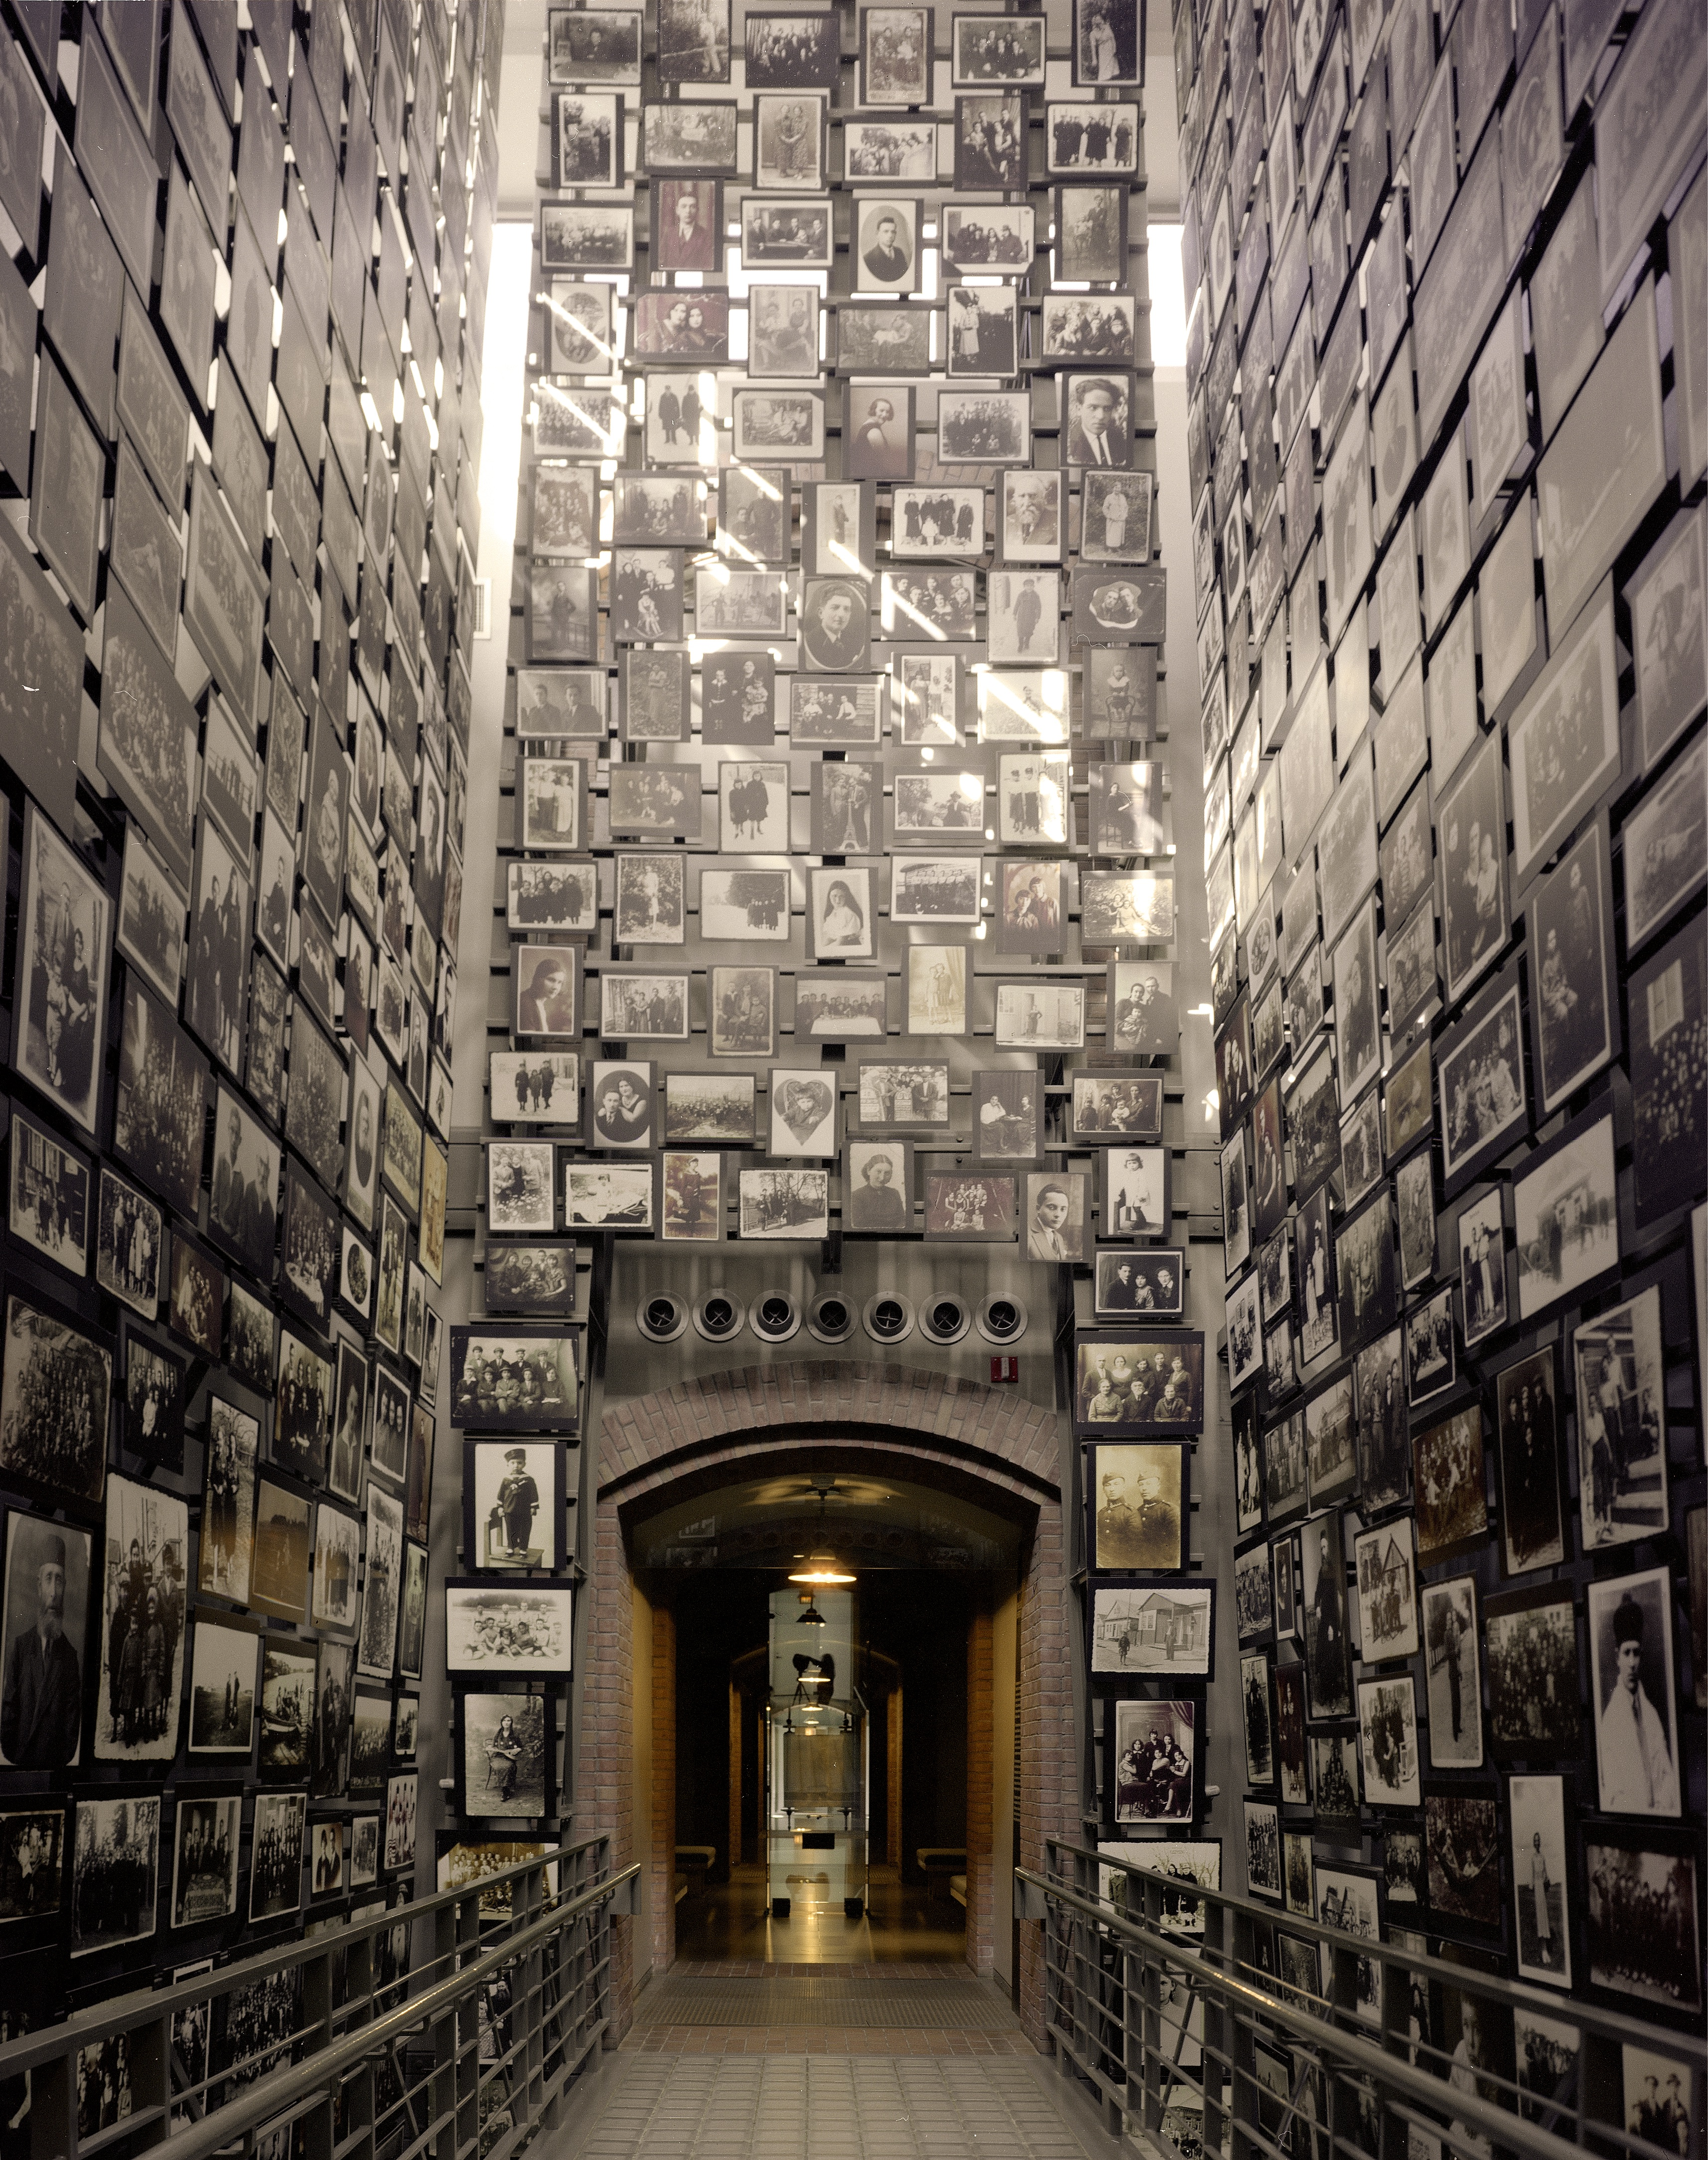 U.S. National Holocaust Museum Wall of Remembrance